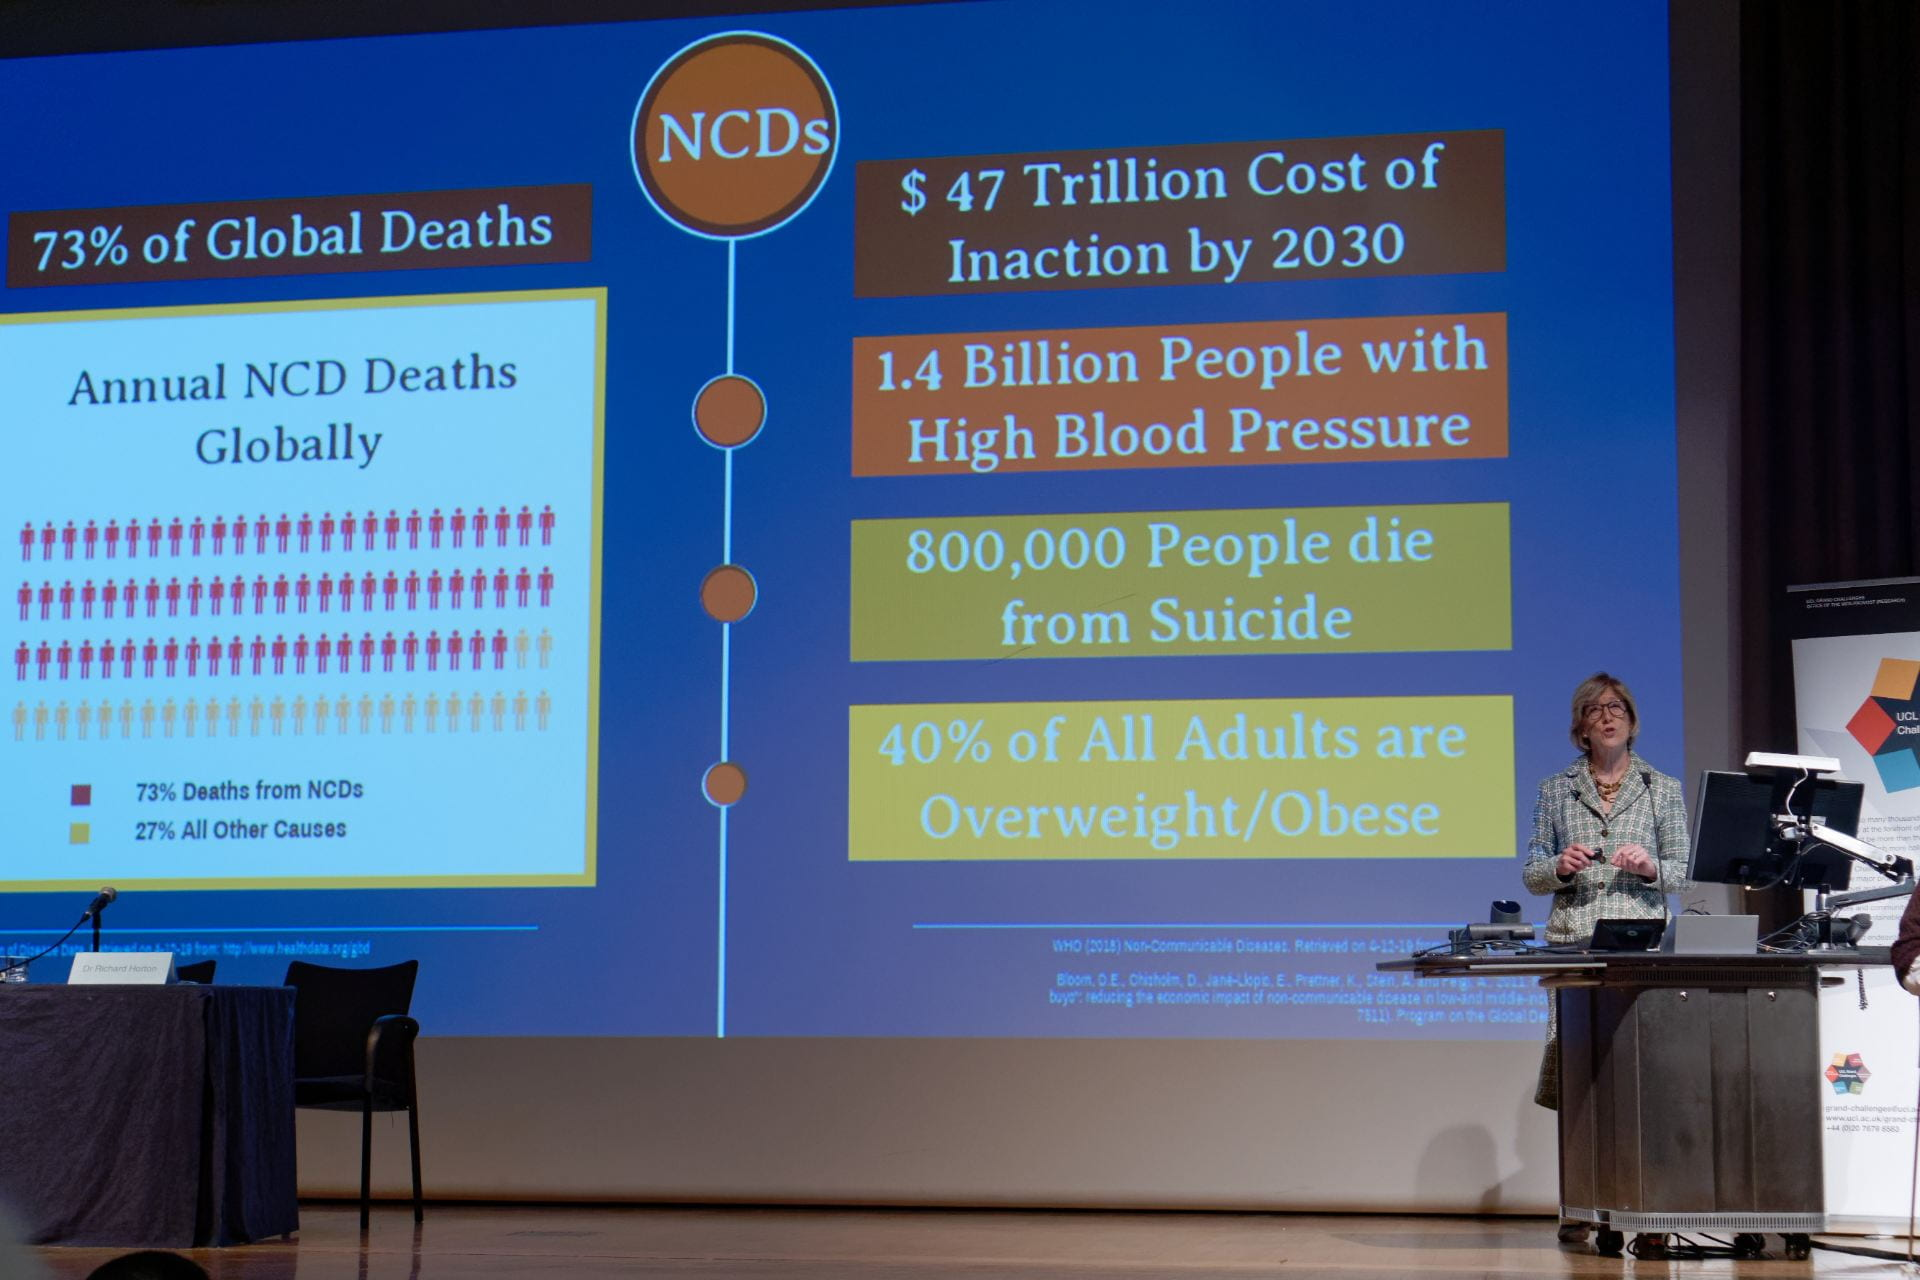 Non-communicable diseases are a global health emergency